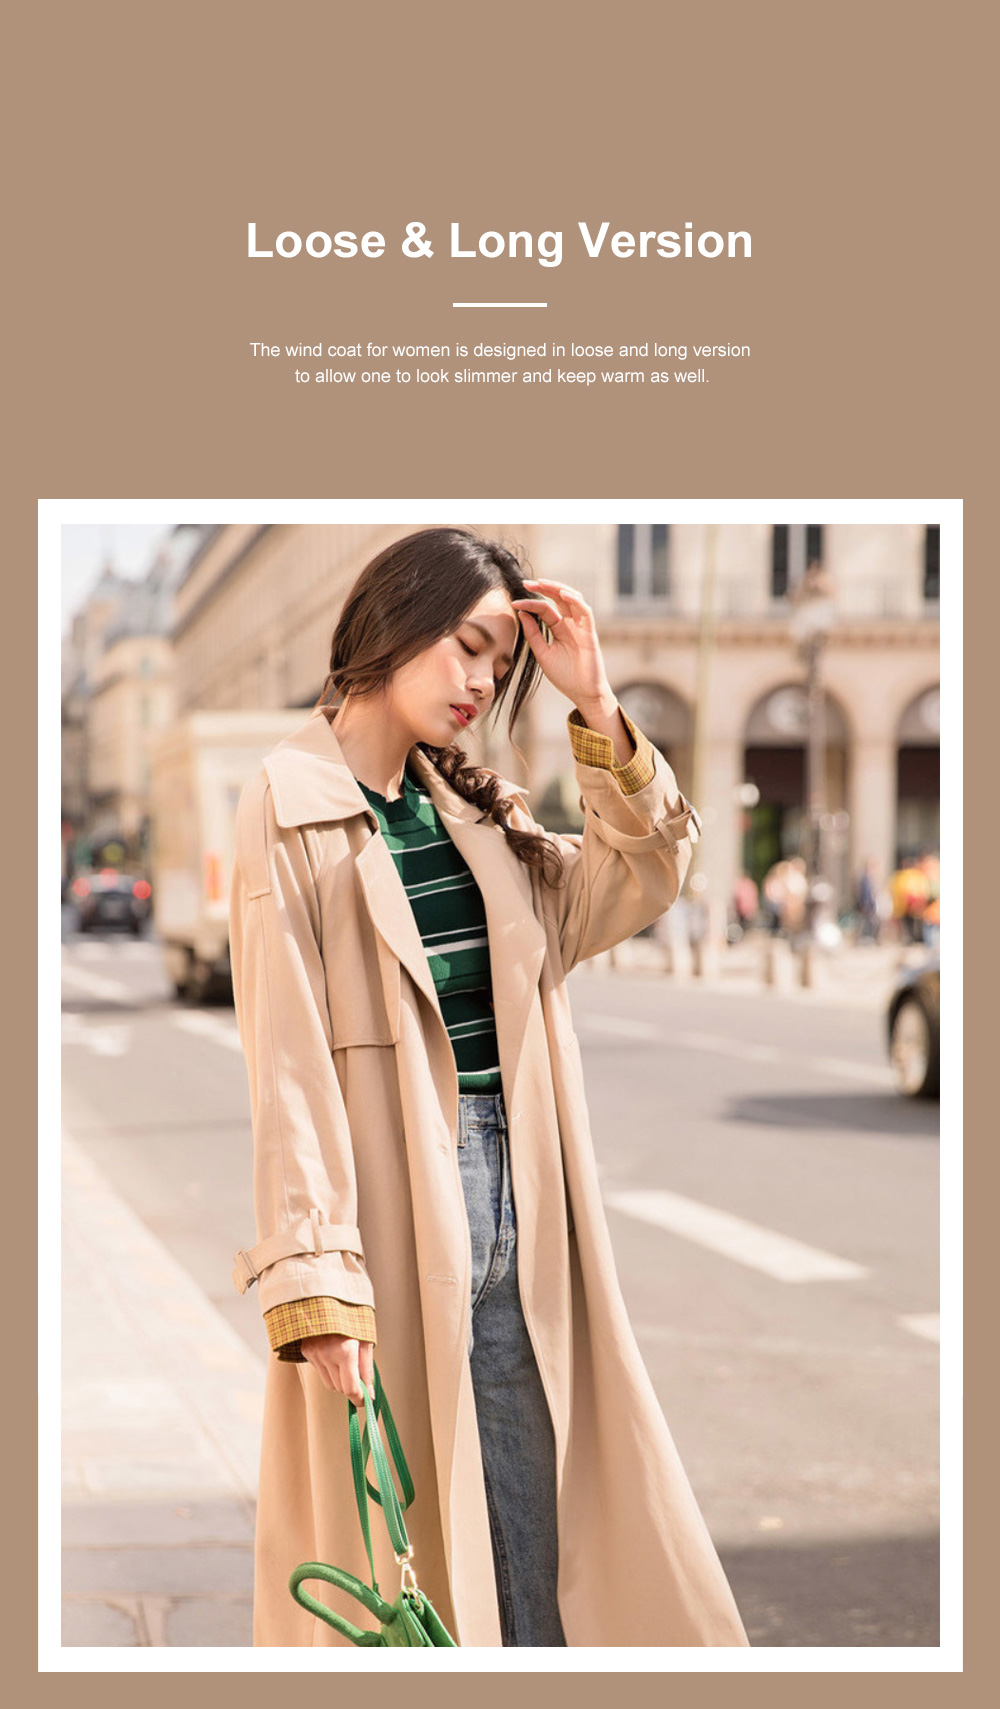 Color Contrast Plaid Cuff Wind Coat New Style Flip Collar Dust Coat for Women Wear Loose Version Mixed Fabric Windbreaker Long Pattern Trench Coat  2